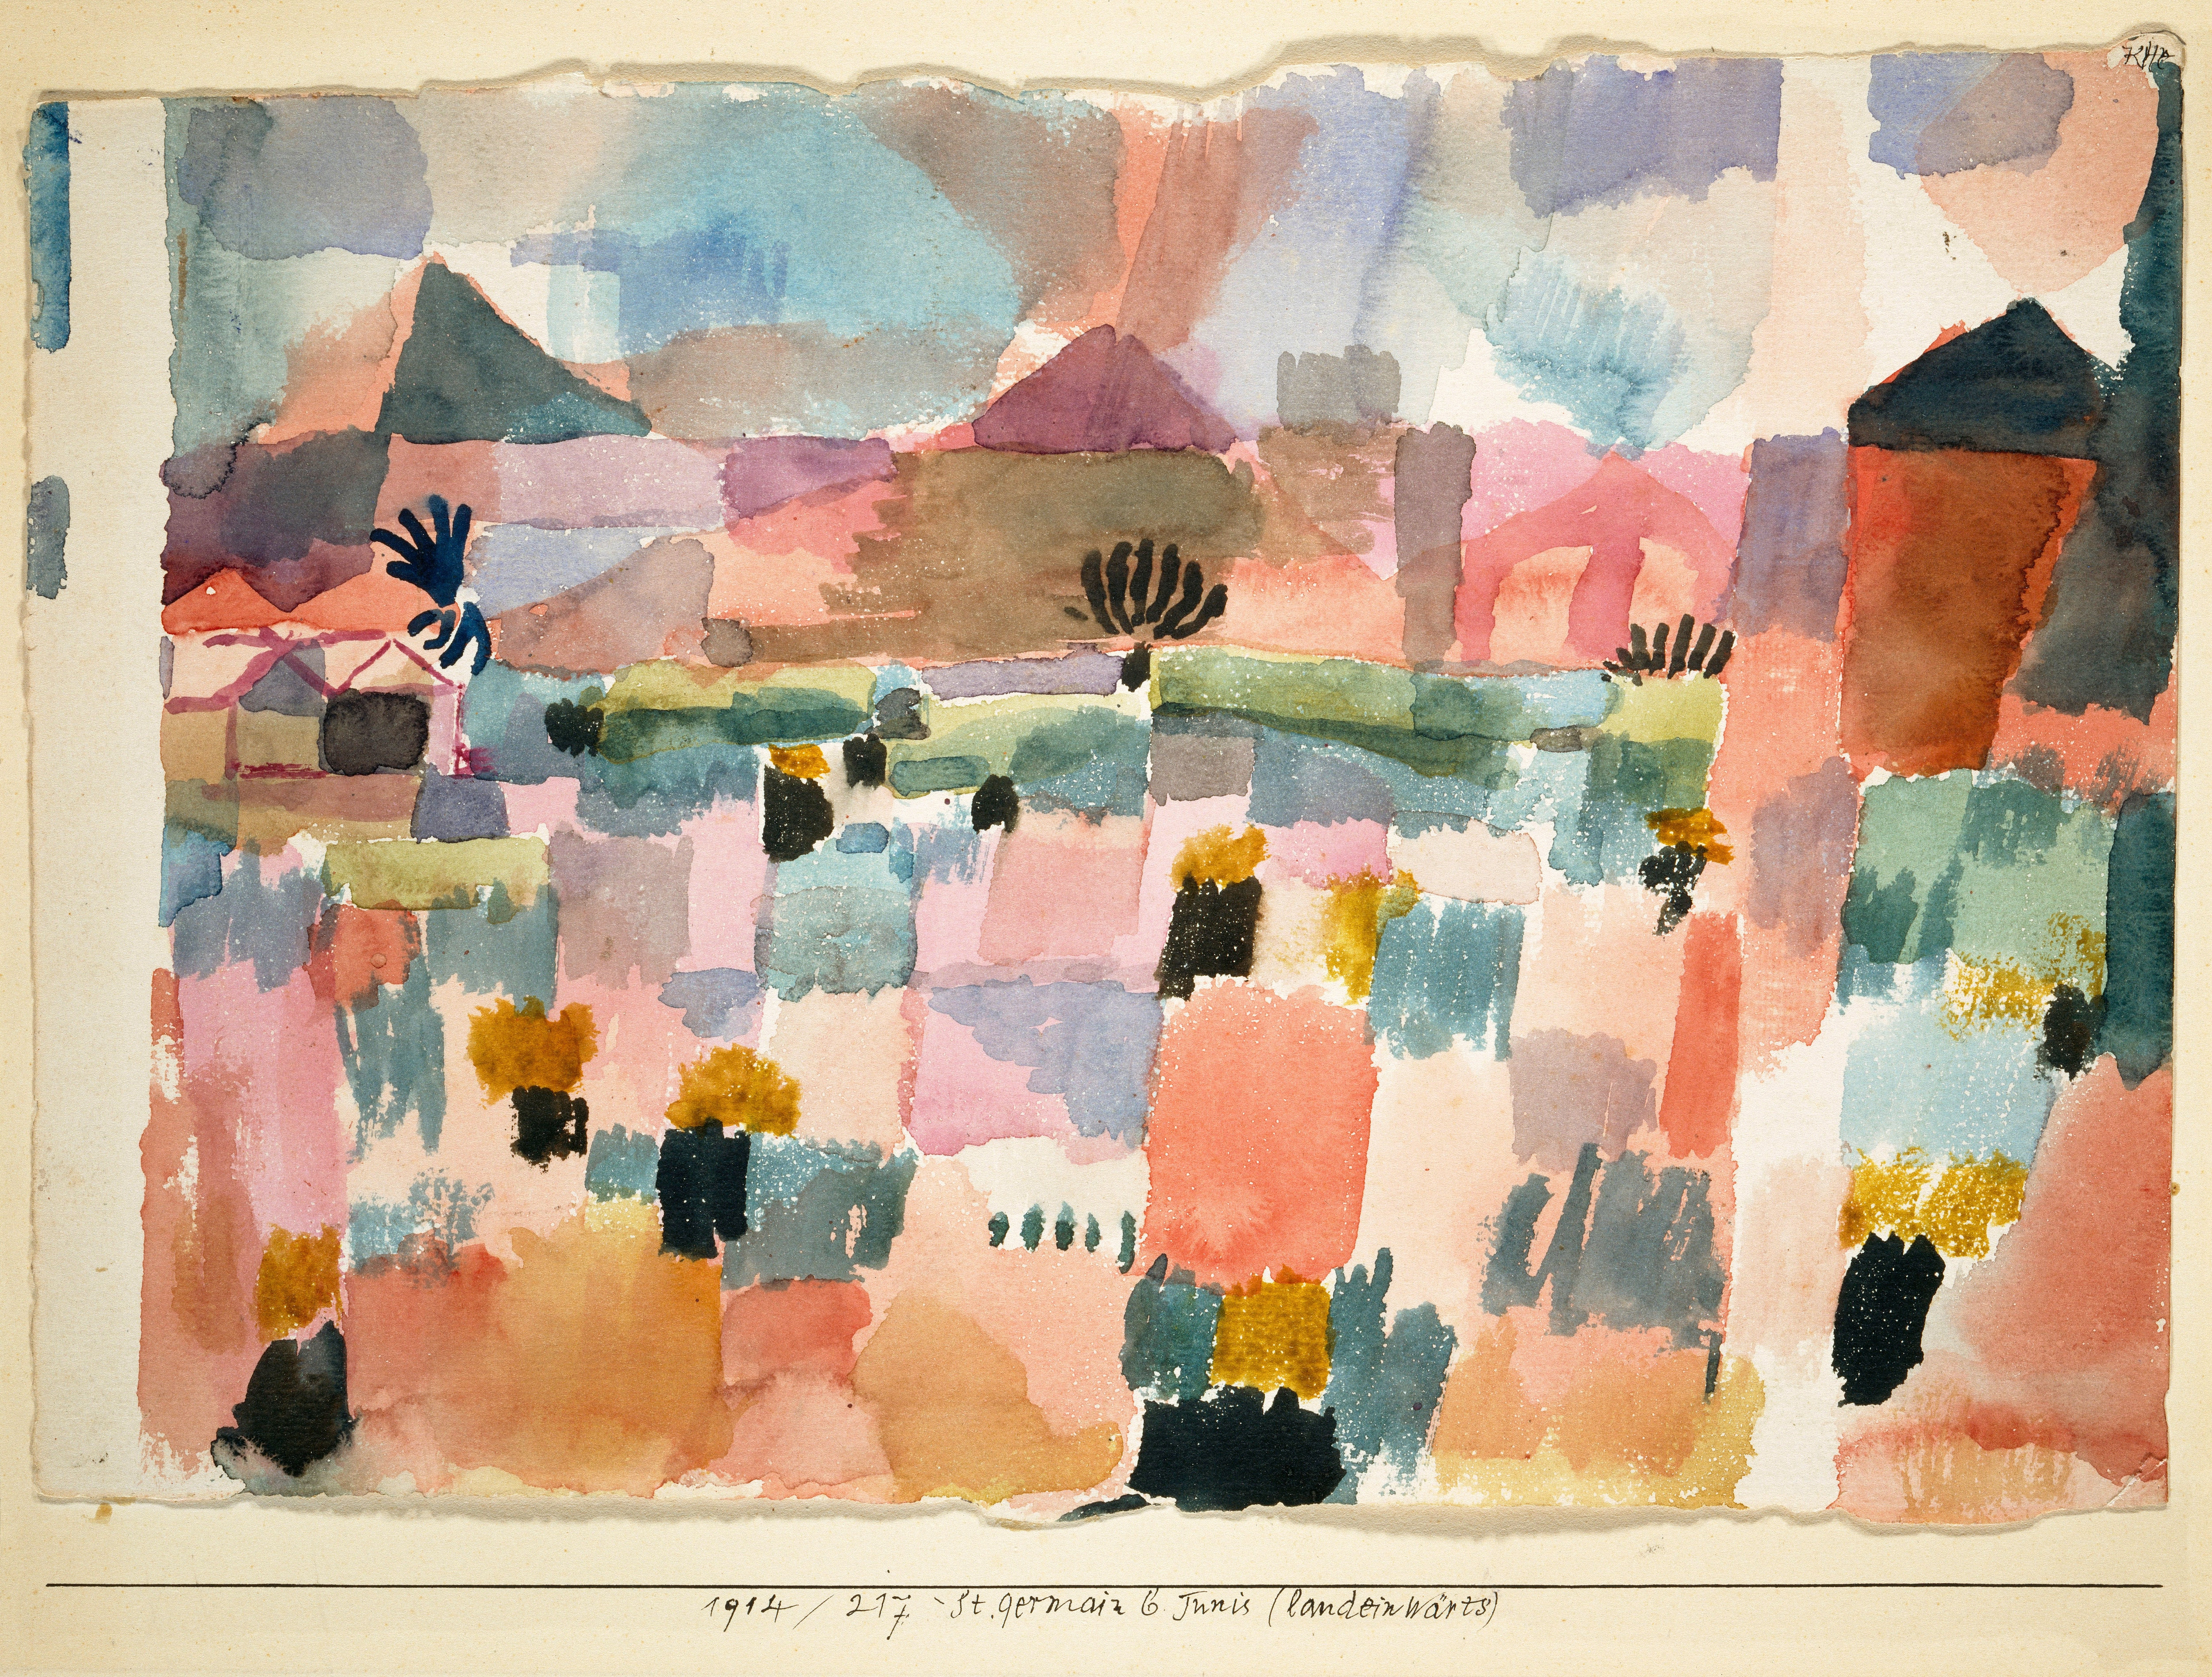 Paul Klee: Saint- Germain perto de Túnis, 1914